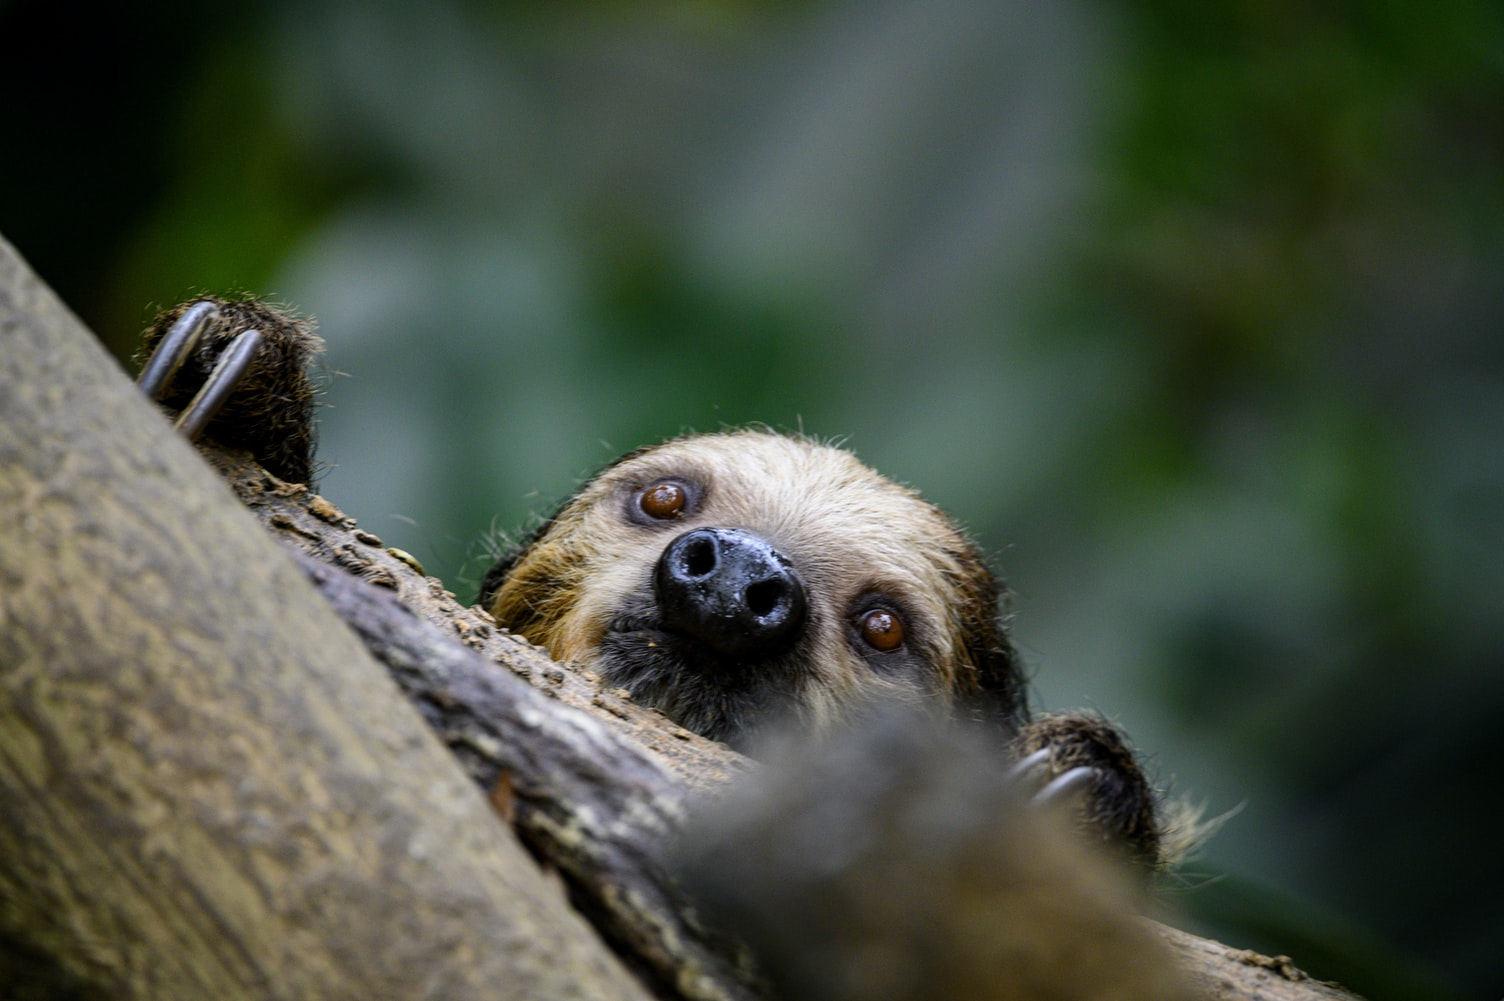 Two Toed Sloth by William Phipps on Unspalsh.